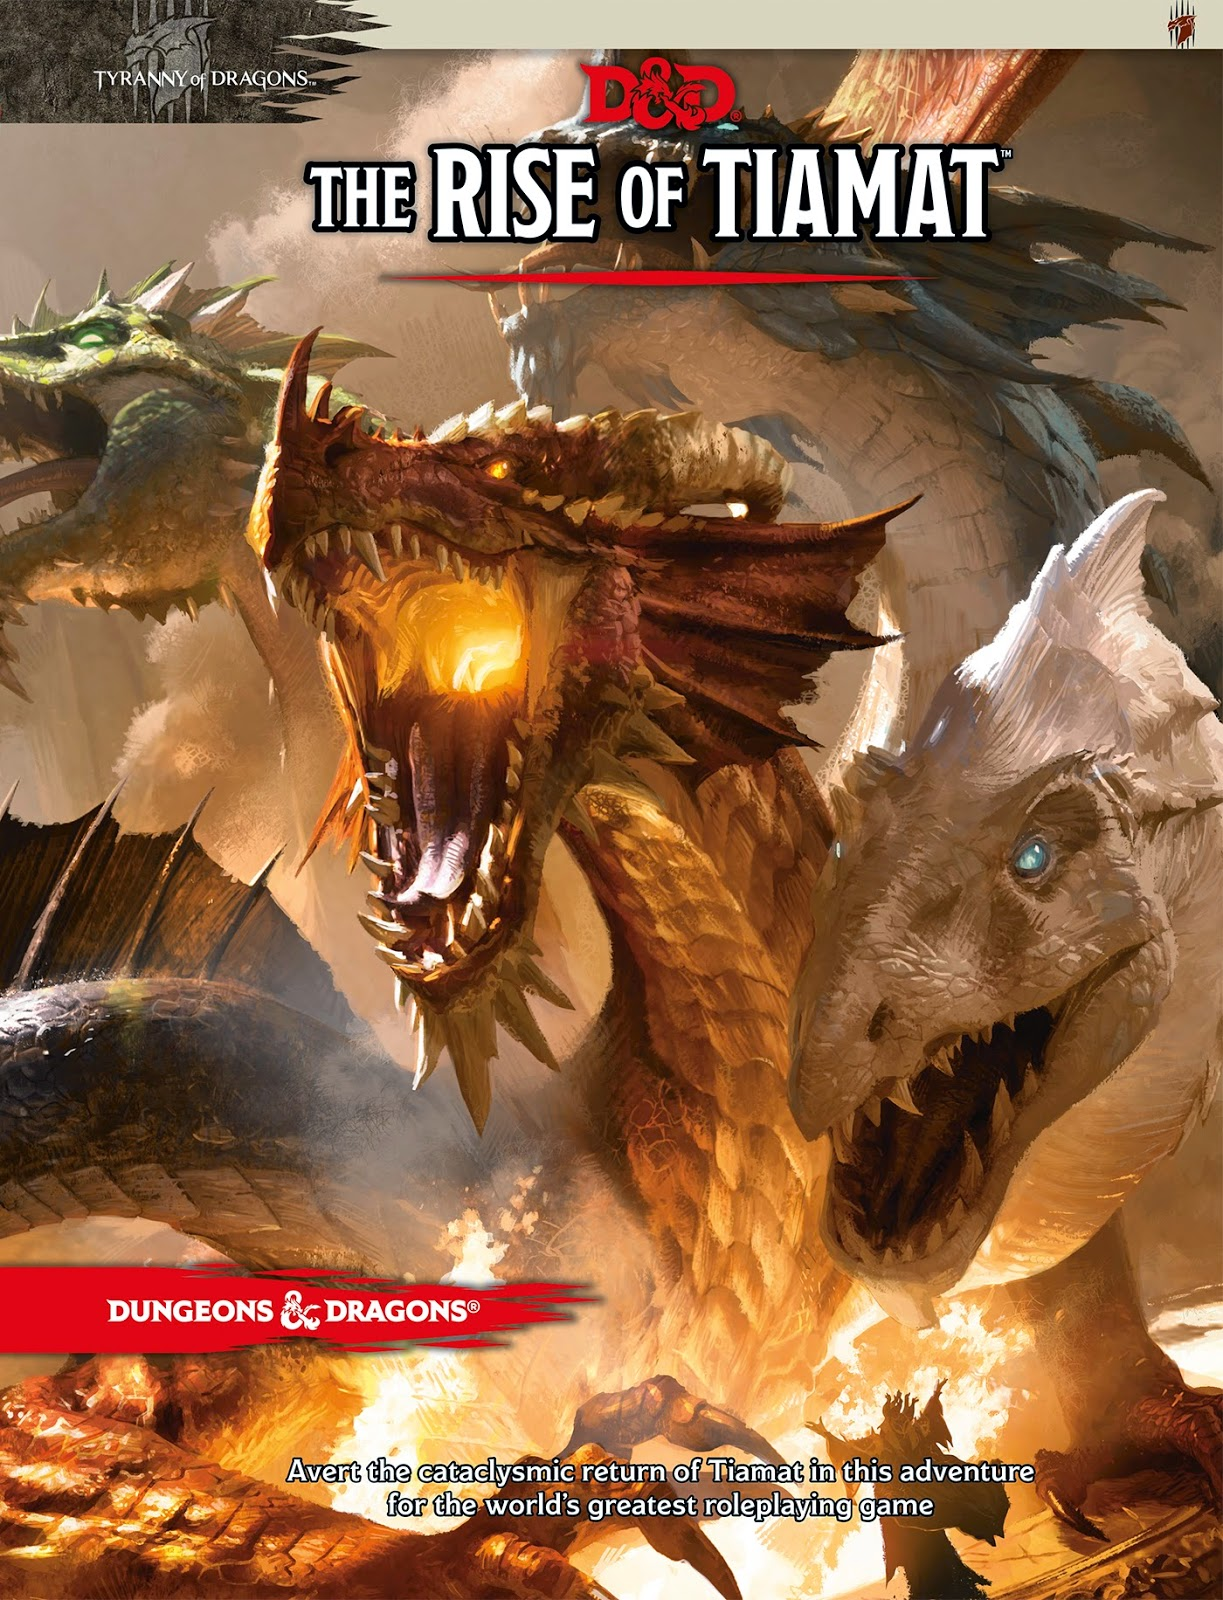 Dungeons and Dragons The Rise of Tiamat front cover.